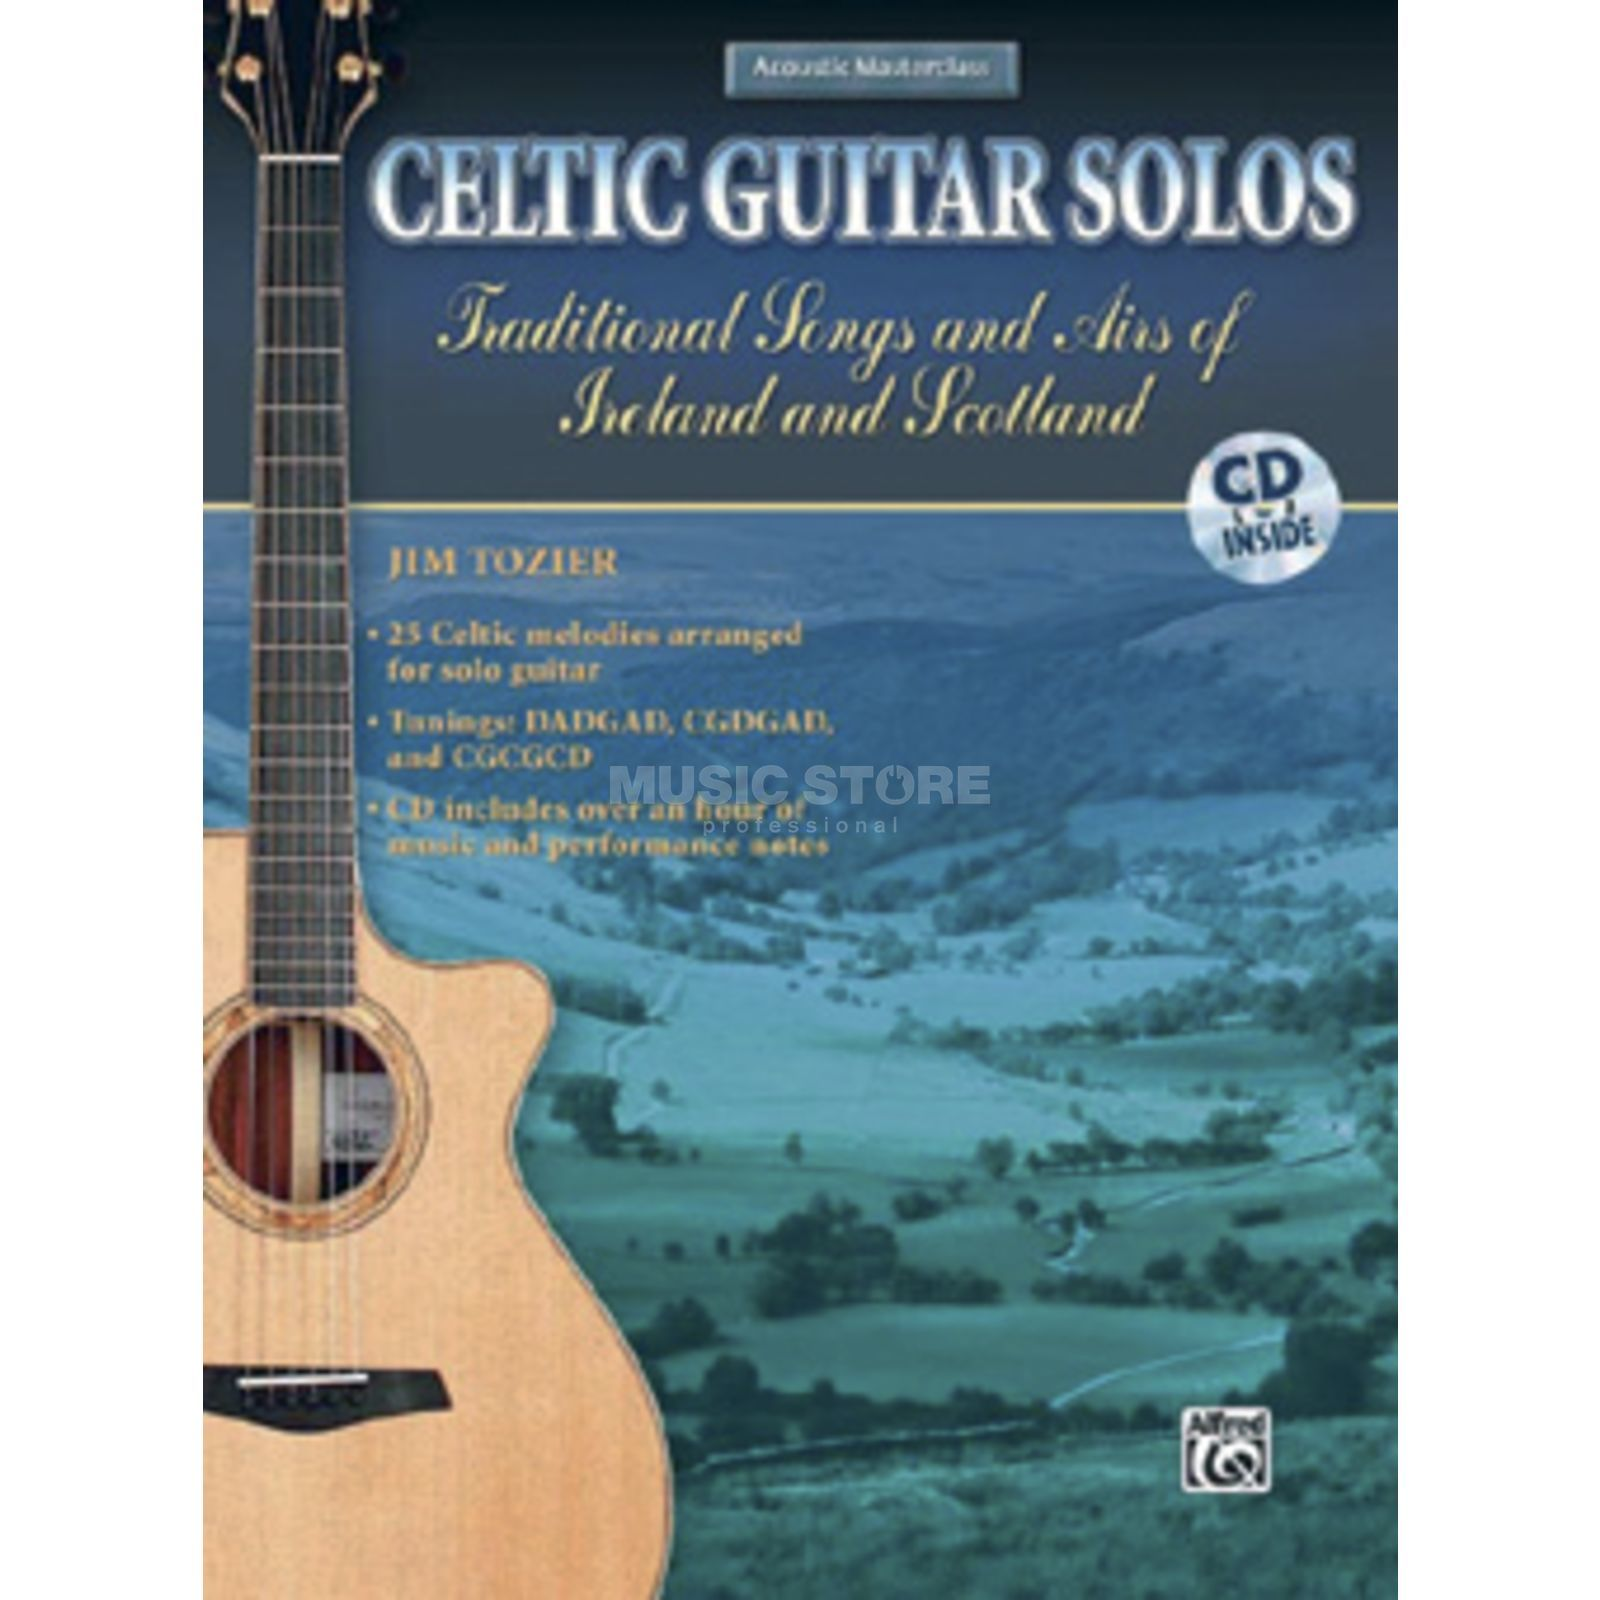 Alfred Music Celtic Guitar Solos Jim Tozier incl. CD Produktbillede